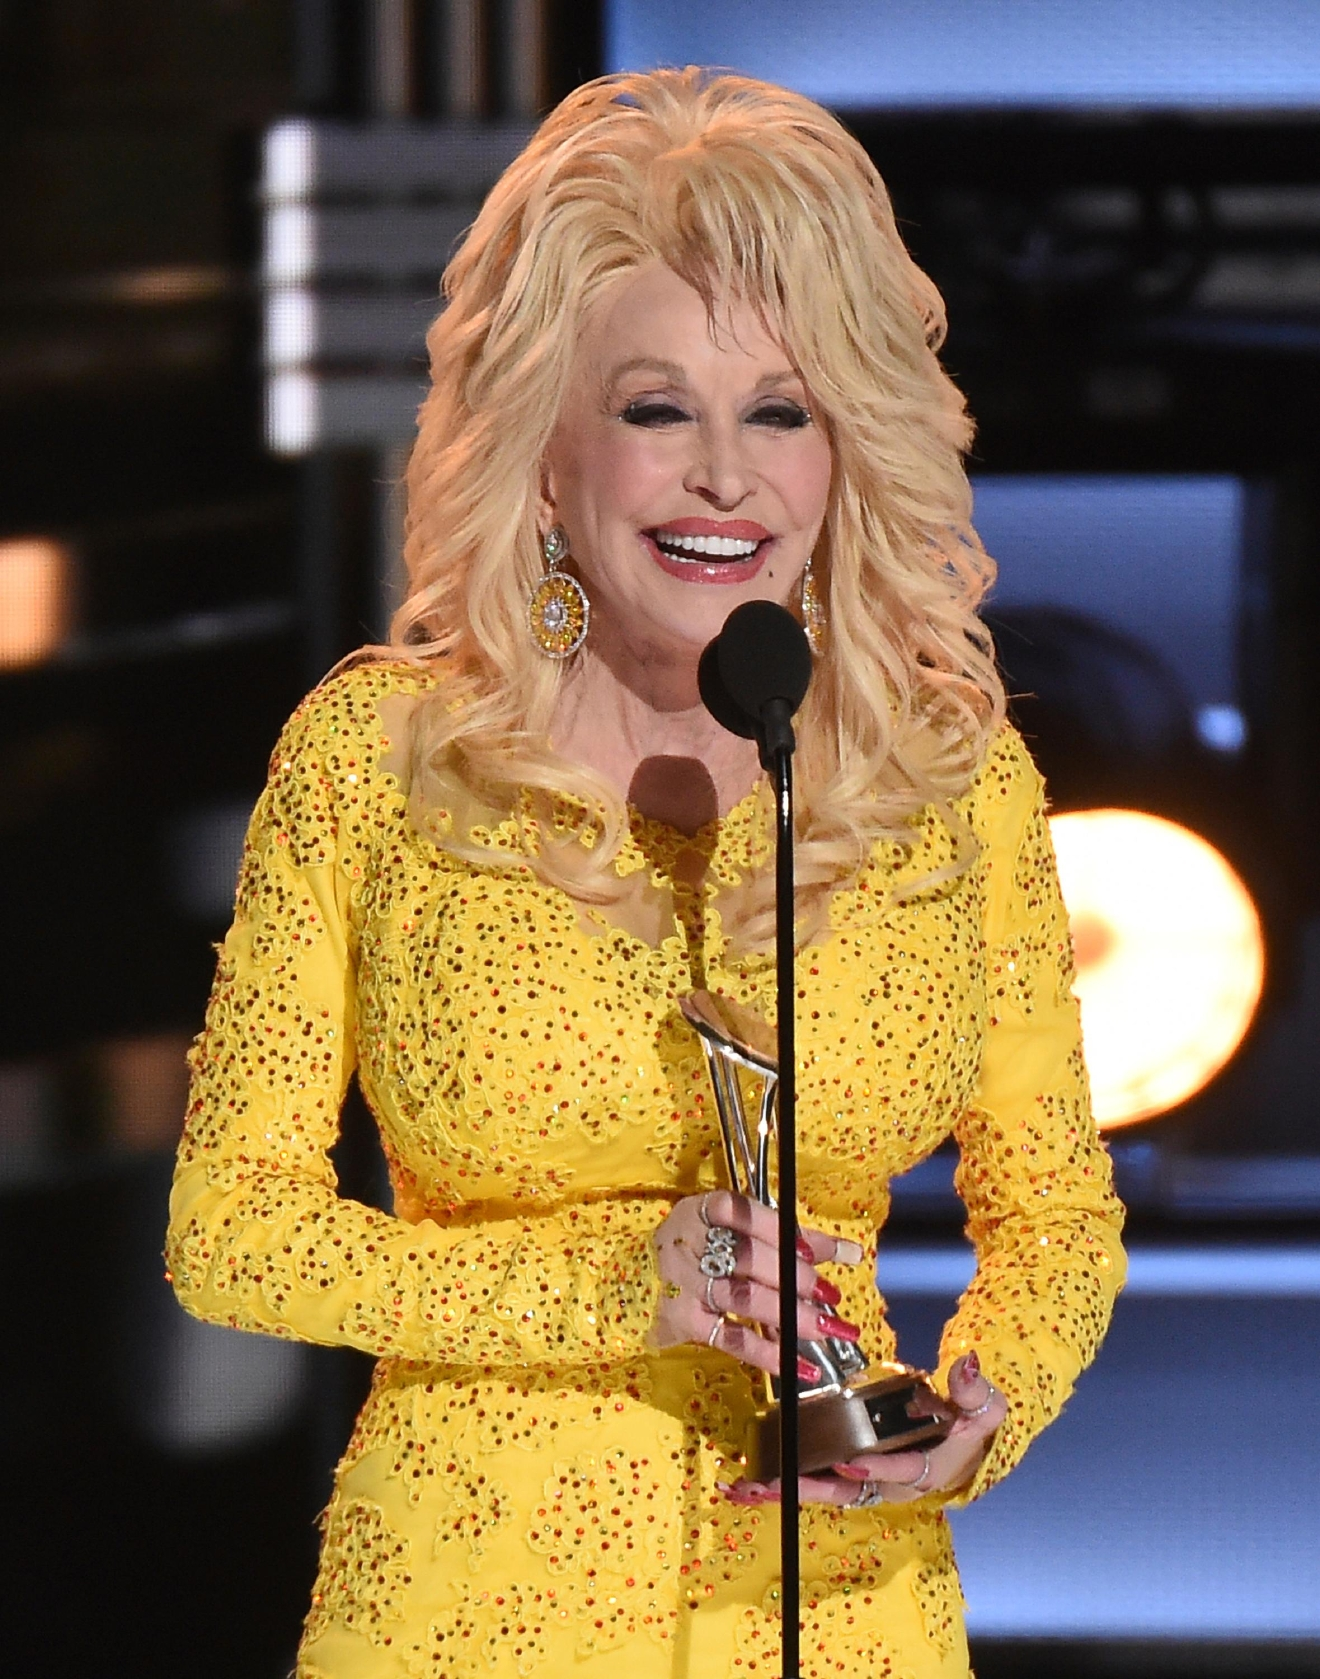 Dolly Parton accepts the Willie Nelson Lifetime Achievement Award at the 50th annual CMA Awards at the Bridgestone Arena on Wednesday, Nov. 2, 2016, in Nashville, Tenn. (Photo by Charles Sykes/Invision/AP)